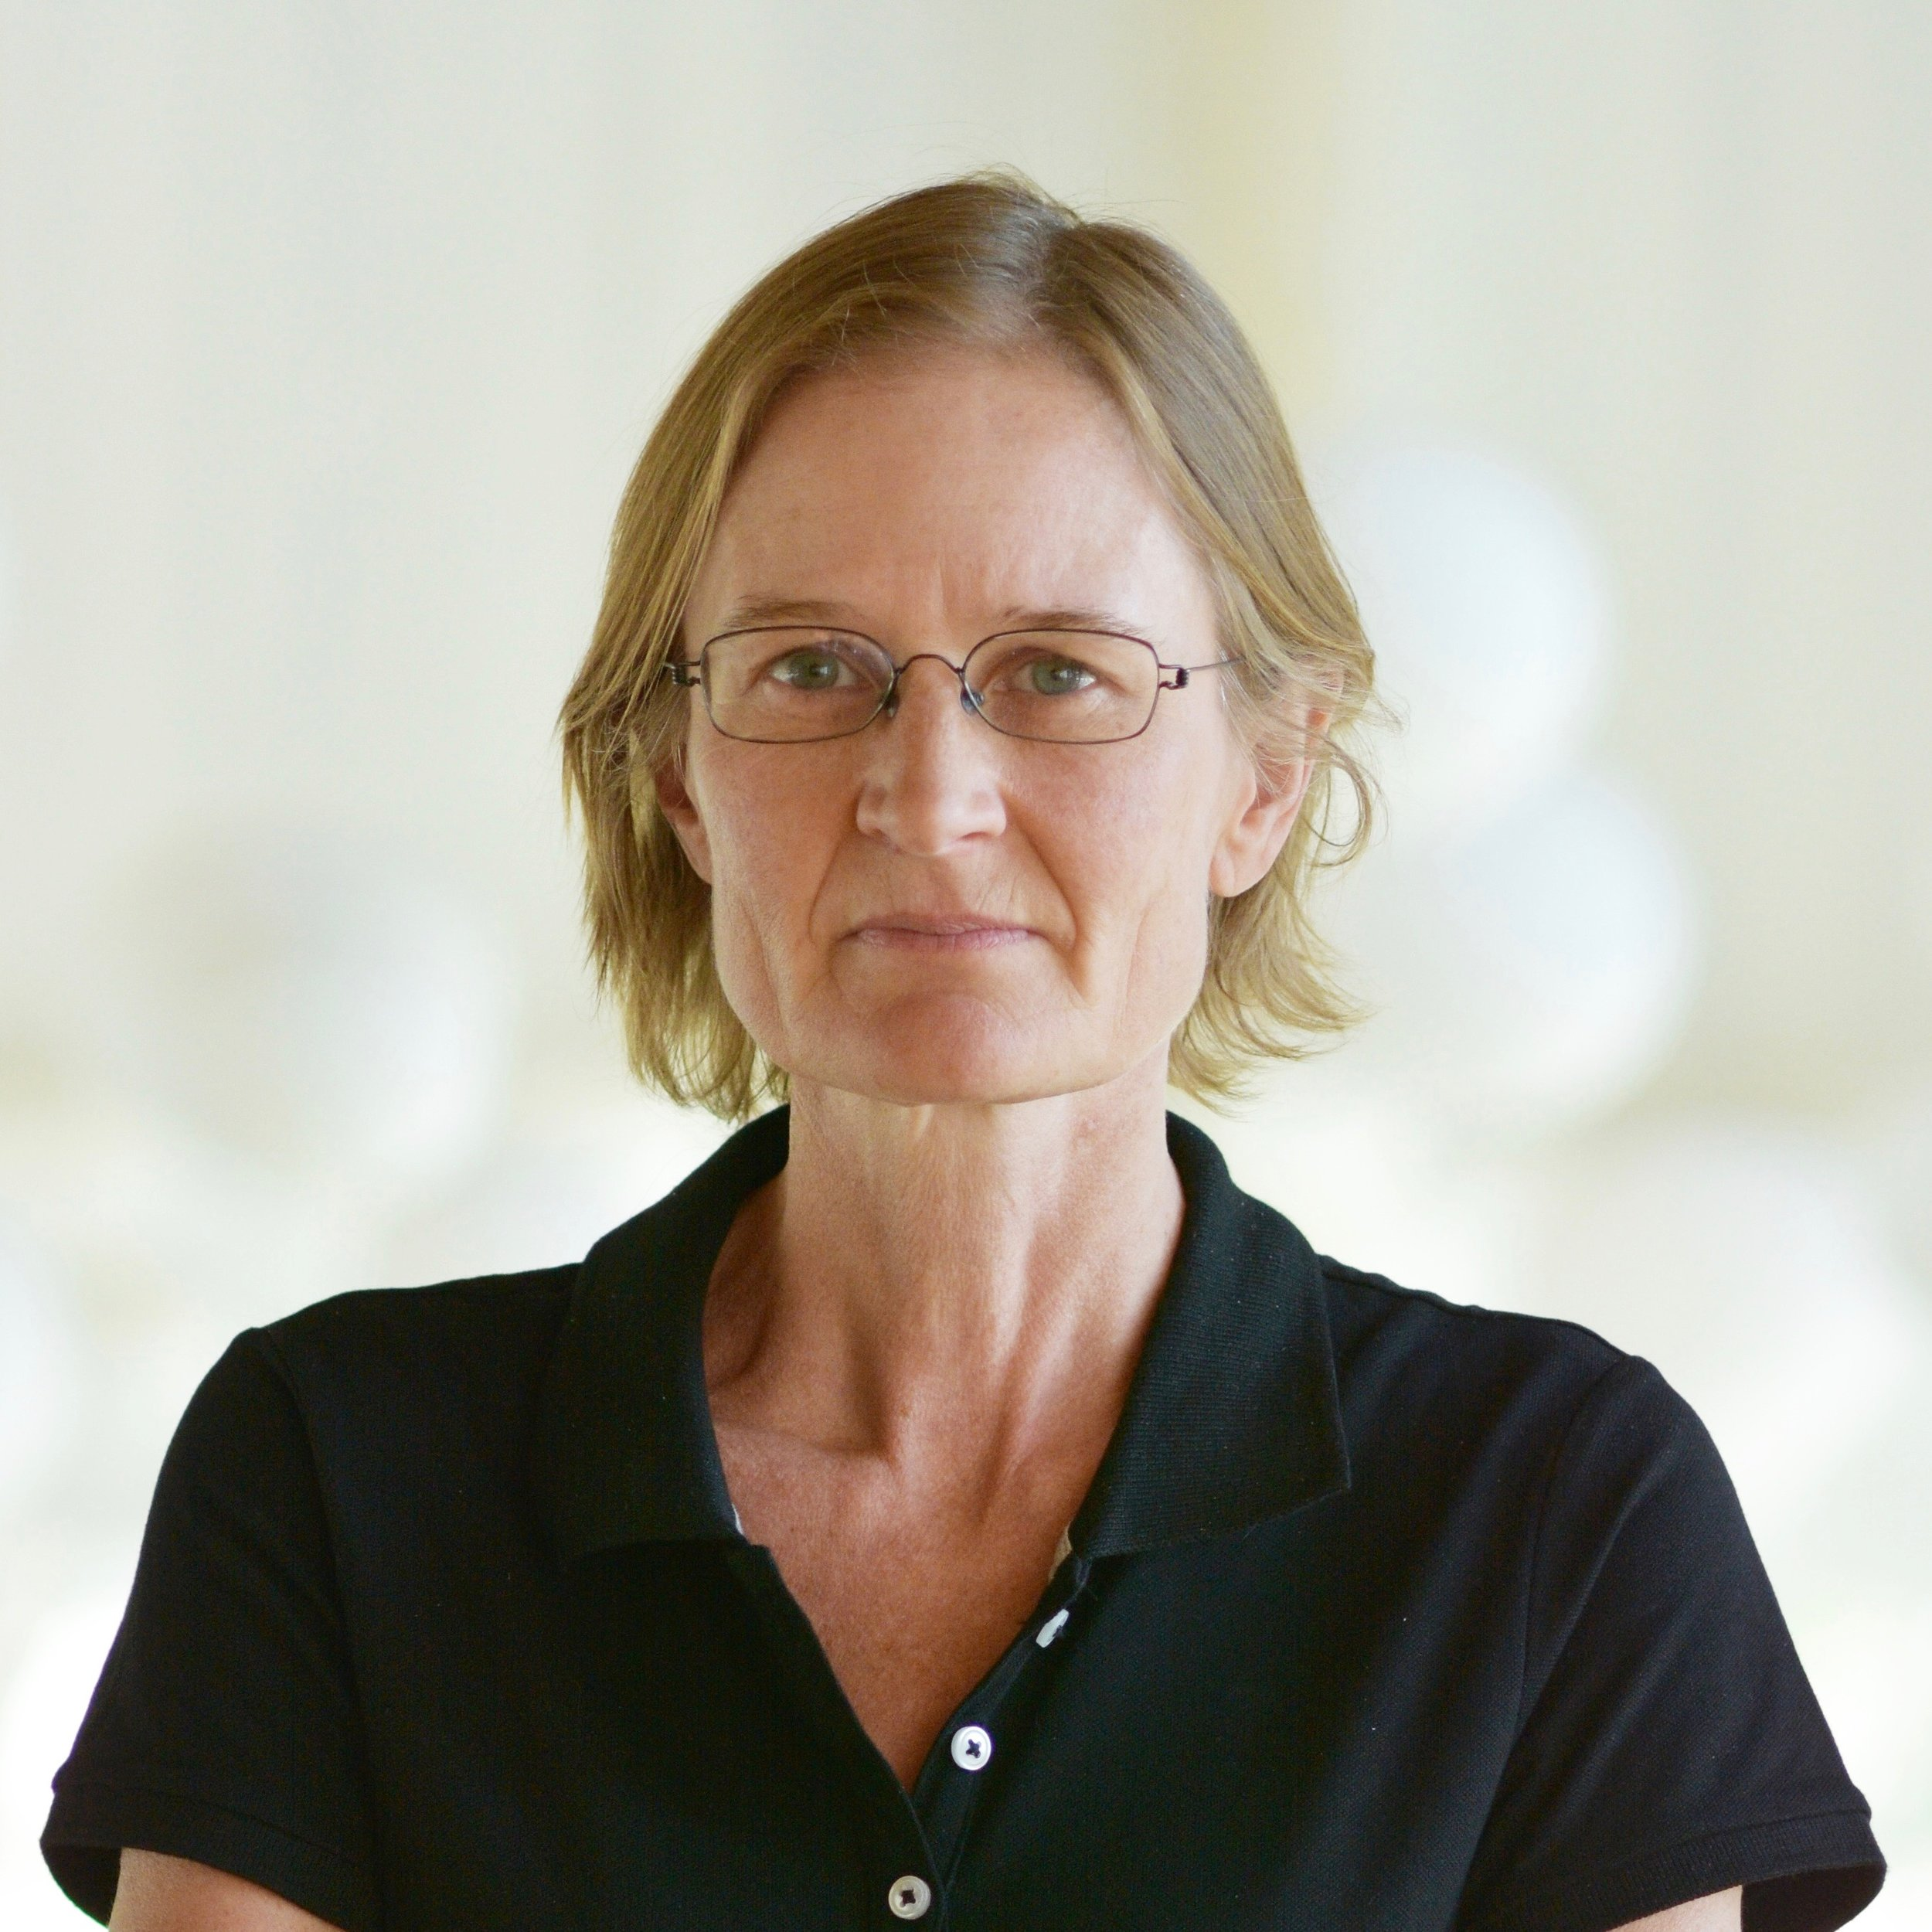 Prof. Mette Rosenkilde - Head of Drug Development & Co-founderMedical doctor with 30 years of experience in receptor pharmacology, drug action and drug development.